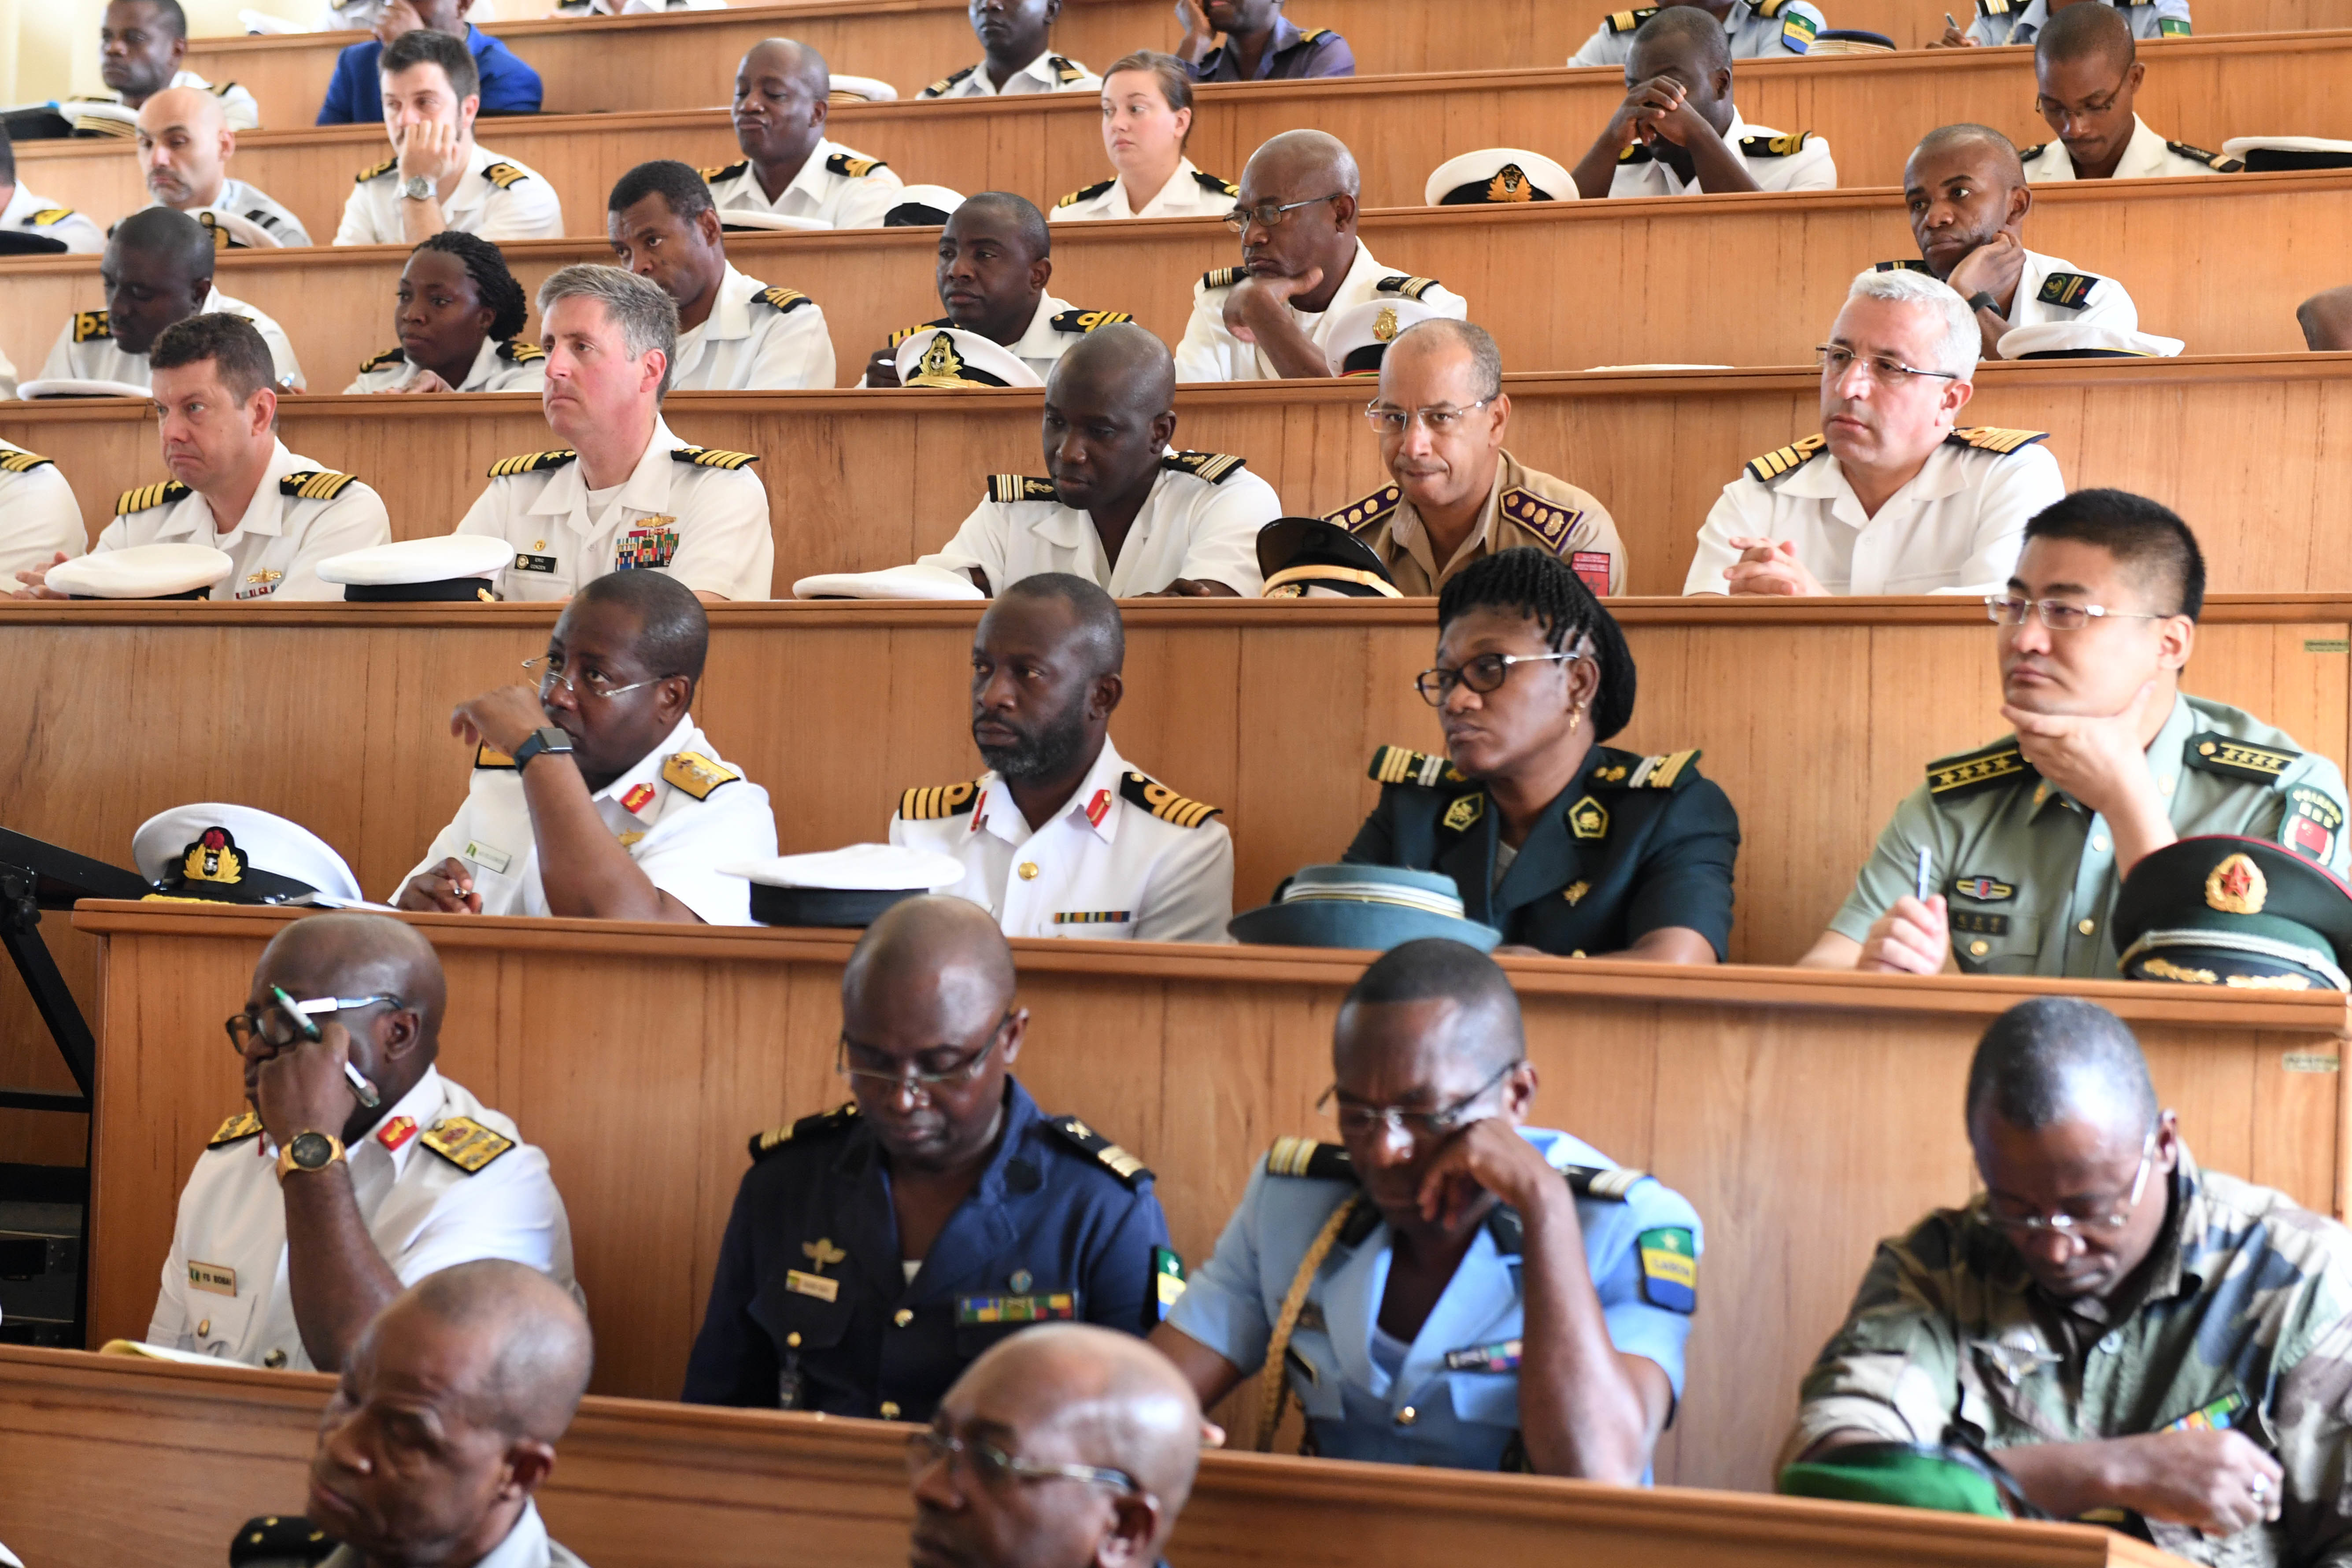 180321-N-XT273-053 LIBREVILLE, Gabon (March 21, 2018) Participating African forces and international partners attend the exercise Obangame Express 2018 opening ceremony in Libreville, Gabon, March 21, 2018. Obangame Express 2018, which is sponsored by U.S. Africa Command (AFRICOM), is designed to improve regional cooperation, maritime domain awareness (MDA), information-sharing practices, and tactical interdiction expertise to enhance the collective capabilities of Gulf of Guinea and West African nations to counter sea-based illicit activity. (U.S. Navy photo by Mass Communication Specialist 1st Class Justin Stumberg)